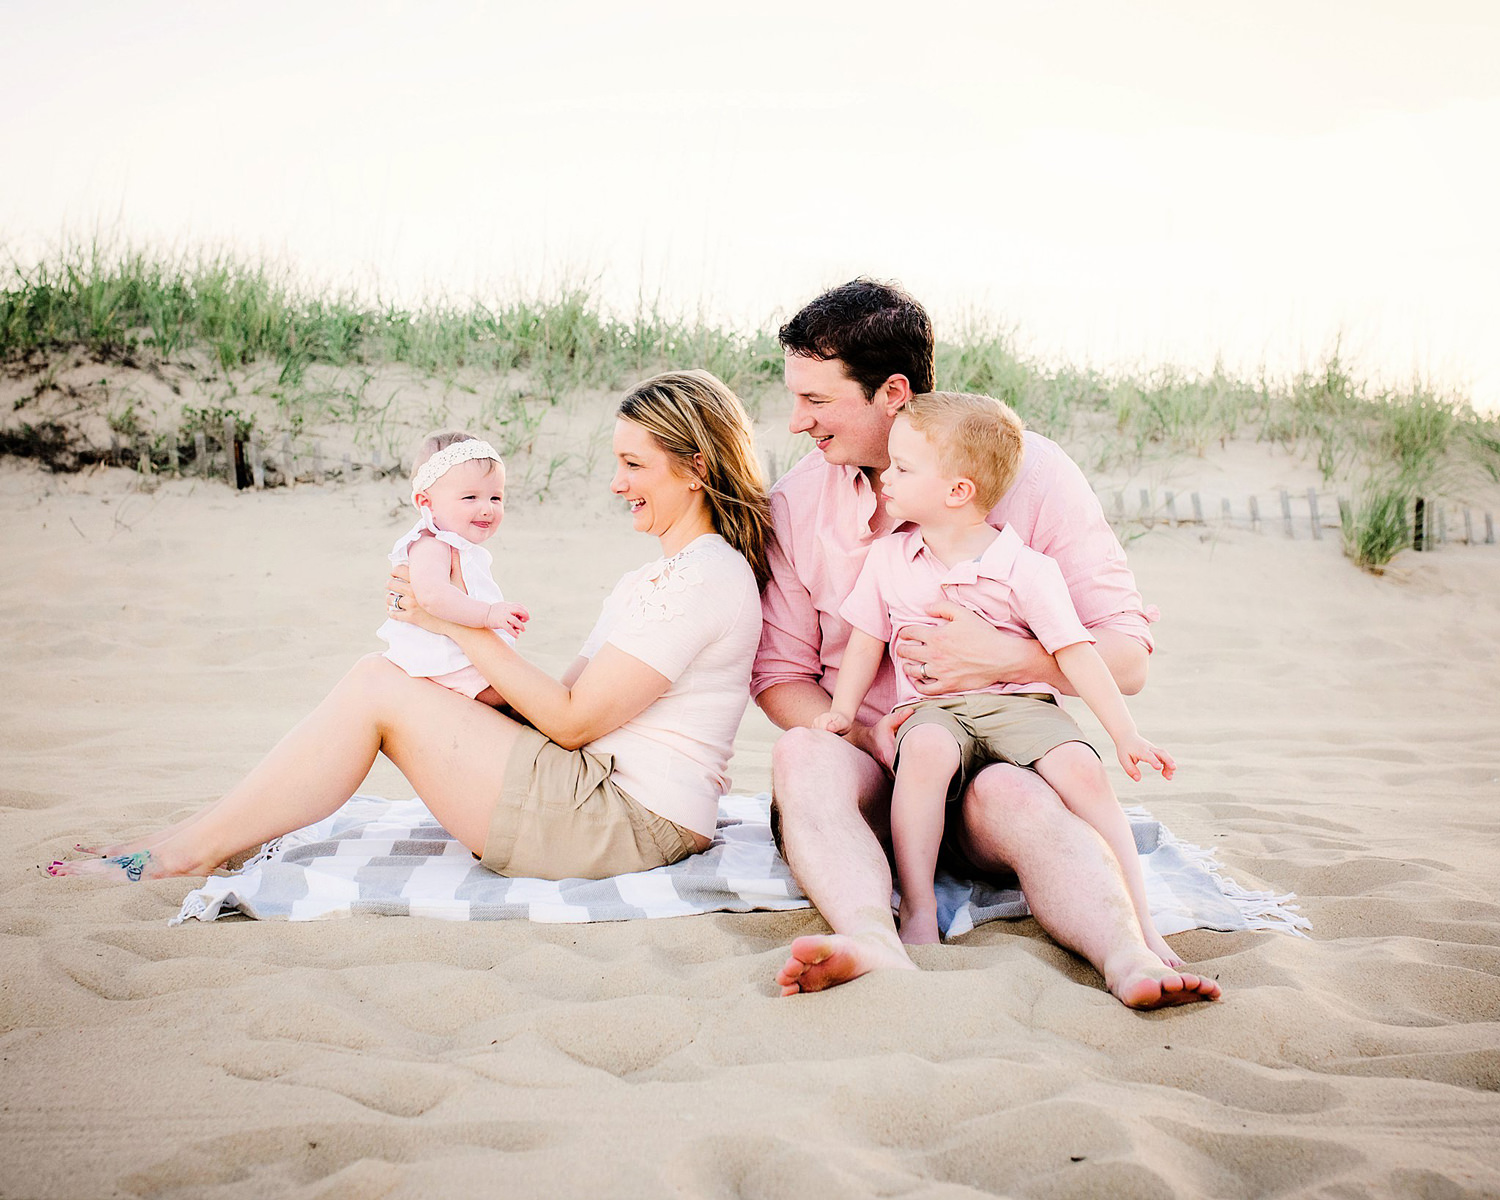 virginia-beach-photographers-sandbridge-family-beach-photos-with-toddlers-melissa-bliss-photography.jpg